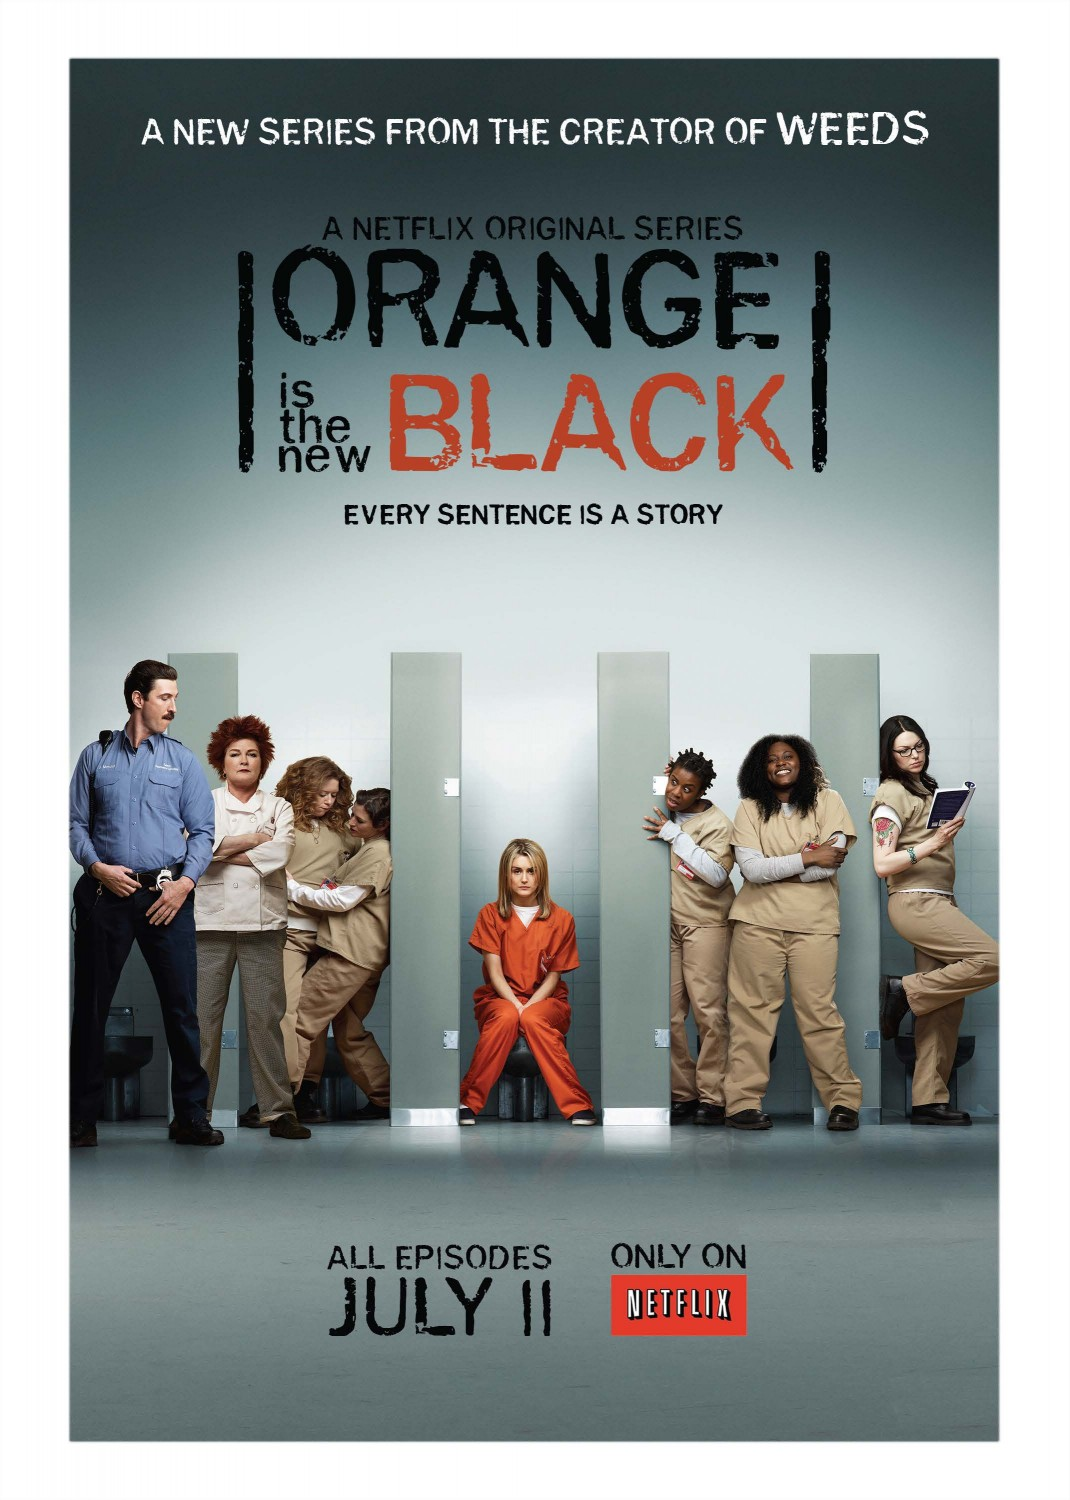 Orange-is-the-New-Black-poster.jpg